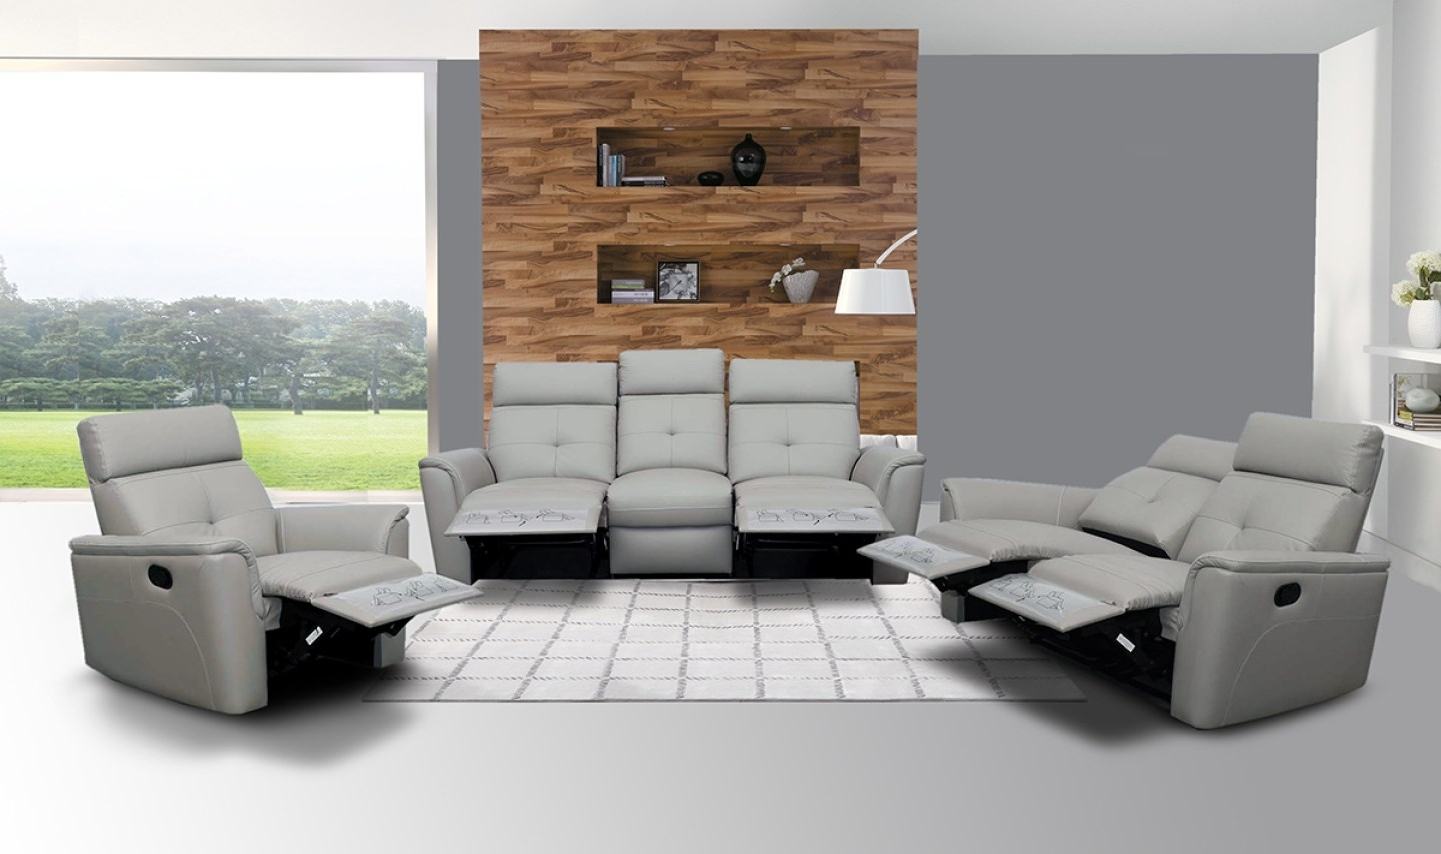 Preferred Sofa : Riveting Modern Leather Reclining Couch Thrilling Throughout Modern Reclining Leather Sofas (View 20 of 20)